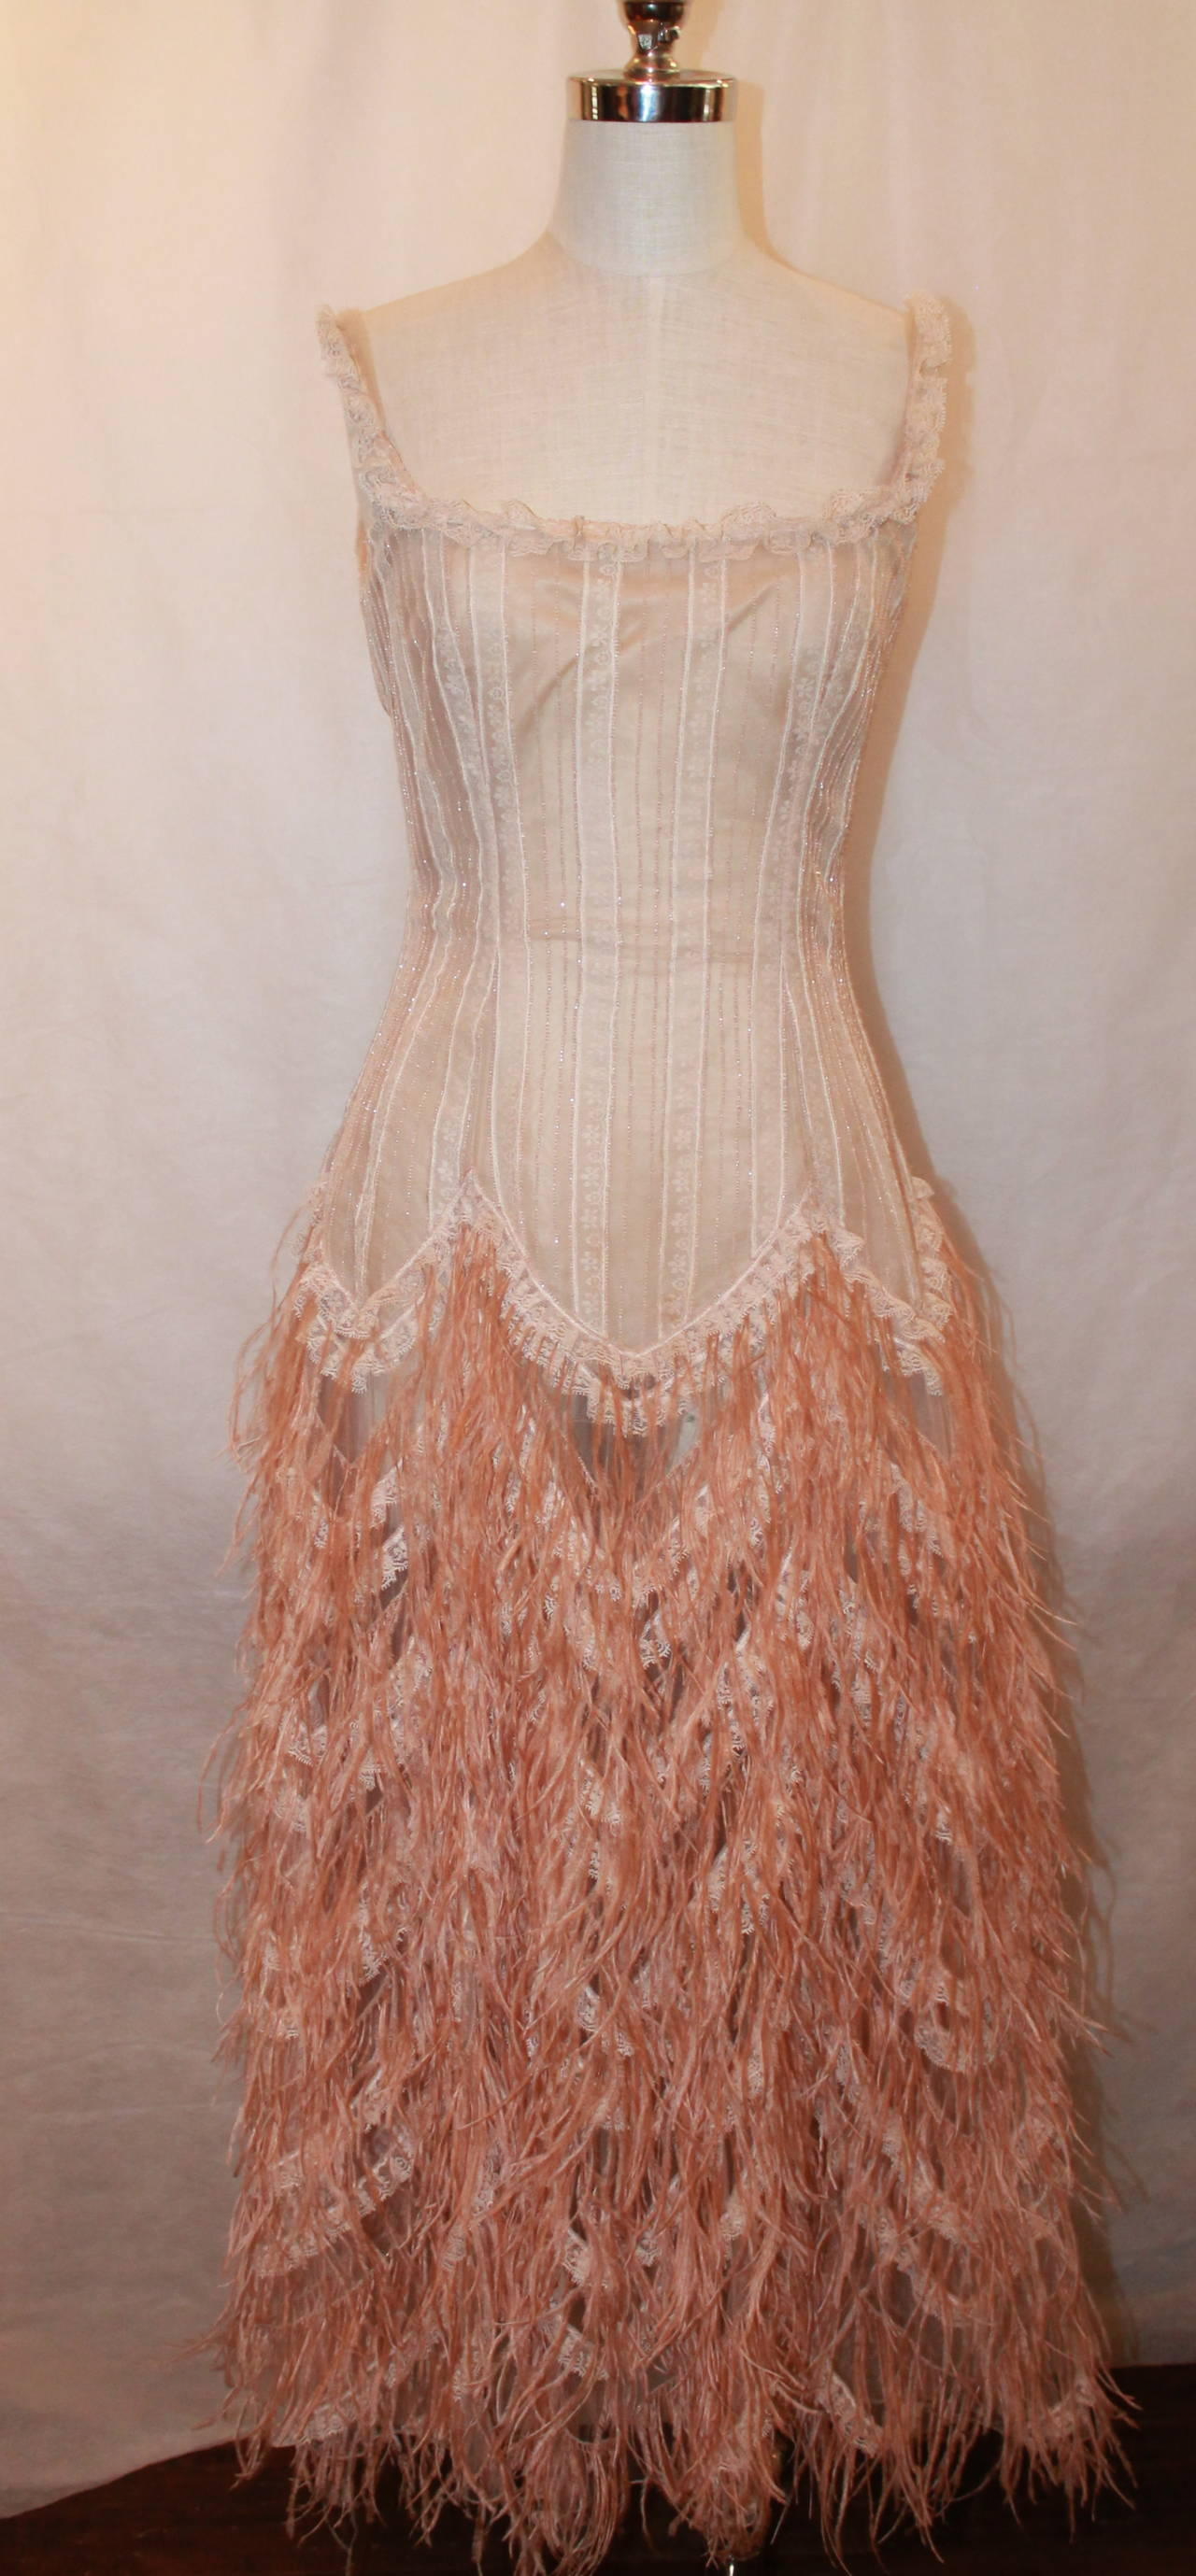 Oscar de la Renta Blush Lace Beaded Gown with Ostrich Feathers & Shawl - M 3